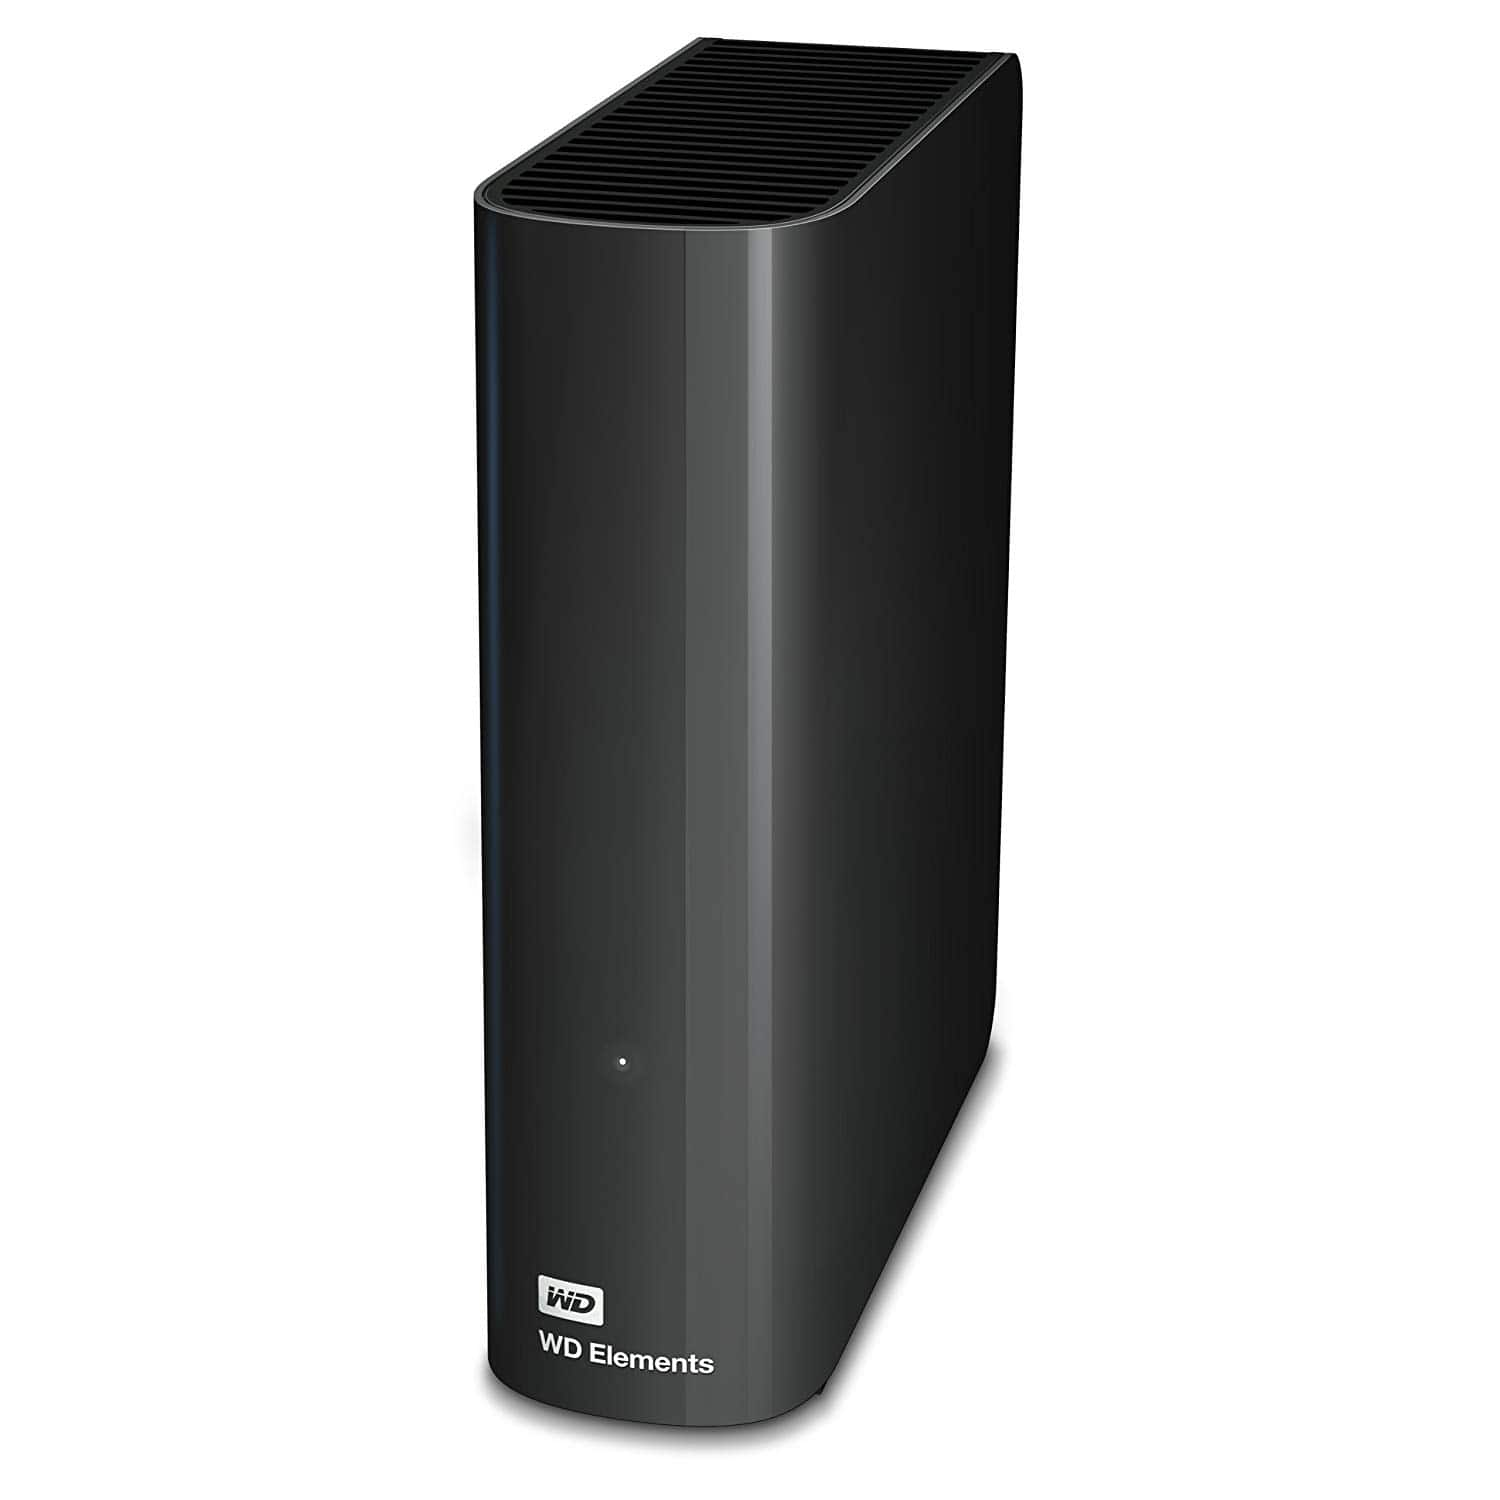 WD elements desktop external HDDs, 4tb 89.96, 6tb 109.90, 8tb 139.99, 10tb 198.95 $109.9